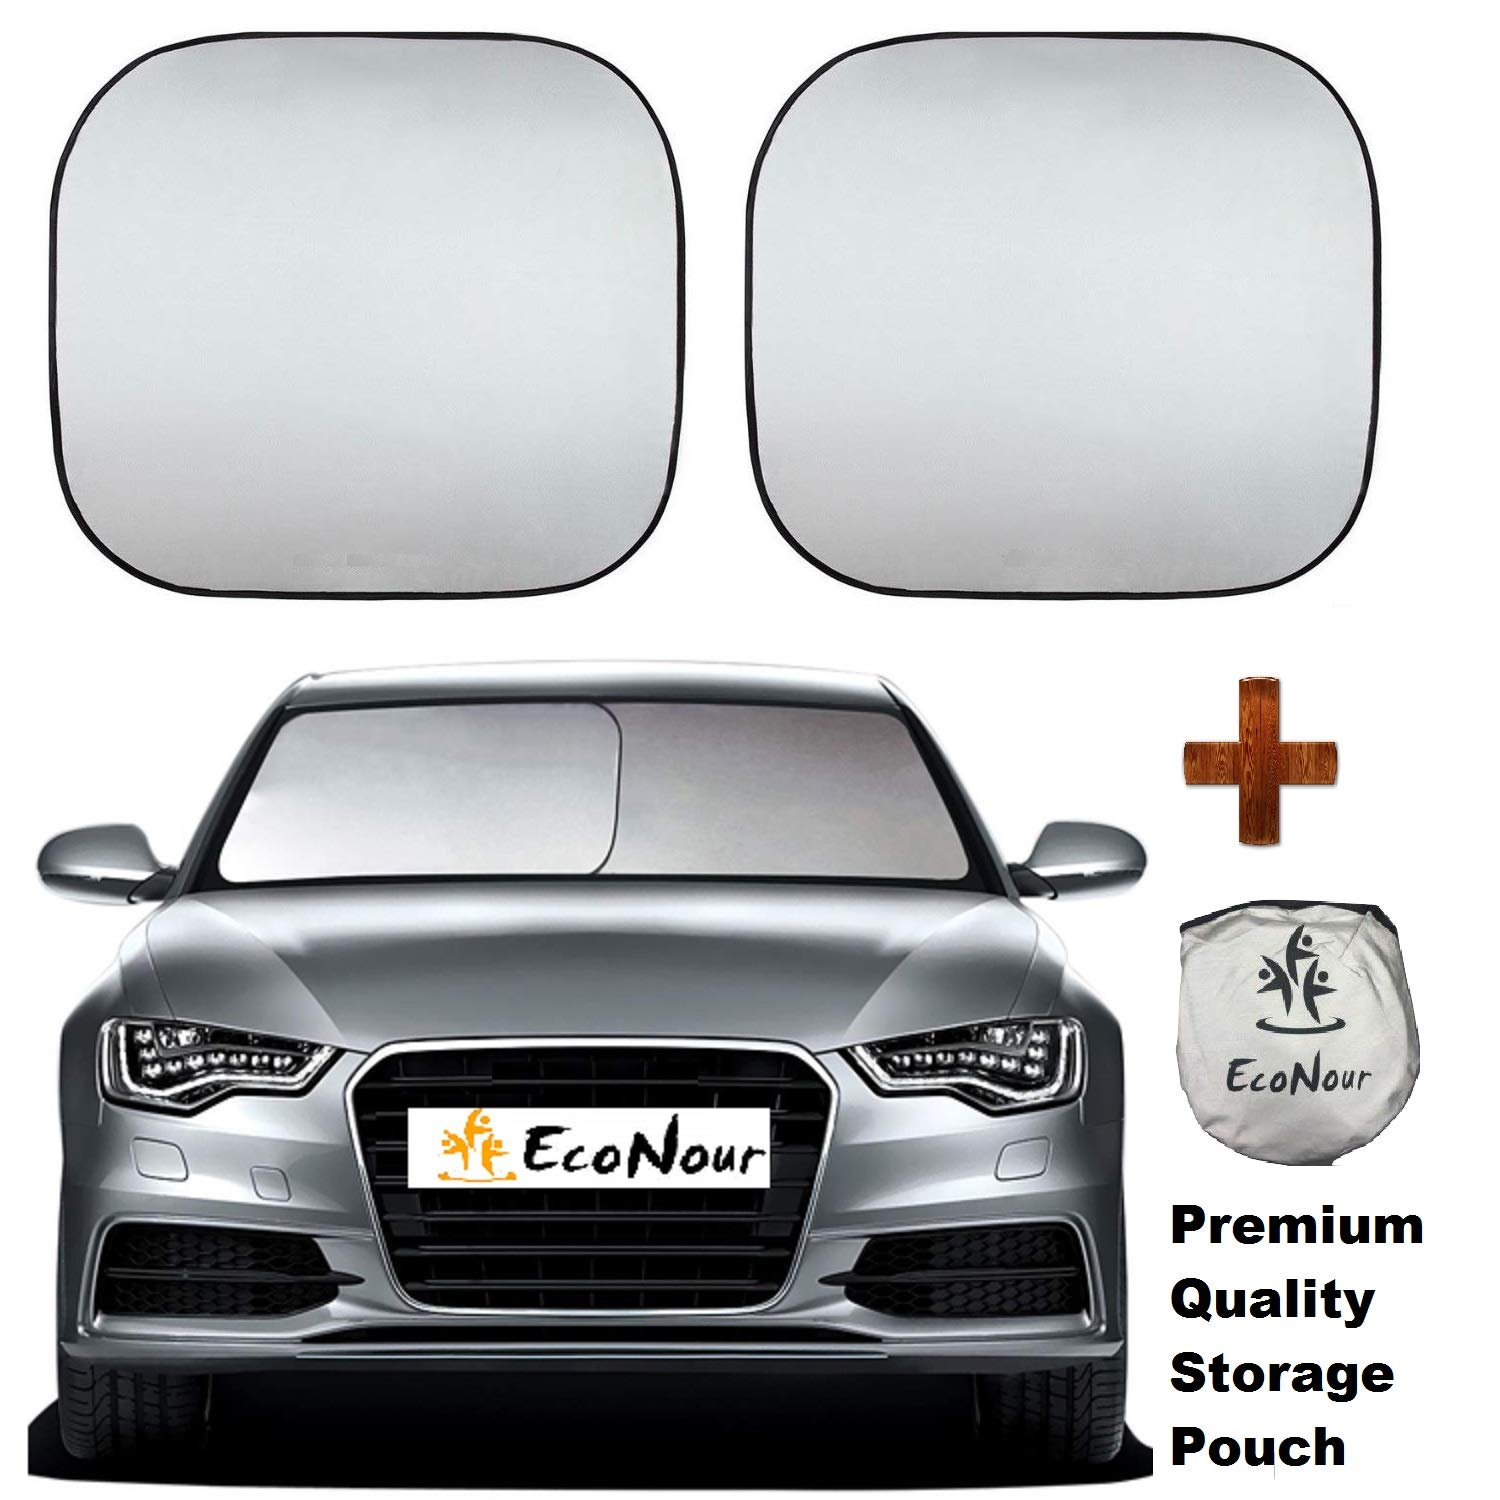 EcoNour Premium Car Windshield Sunshade-Universal Fit for Car, SUV, Van,Truck-. 210T Nylon Material- Heat and Sun Reflector